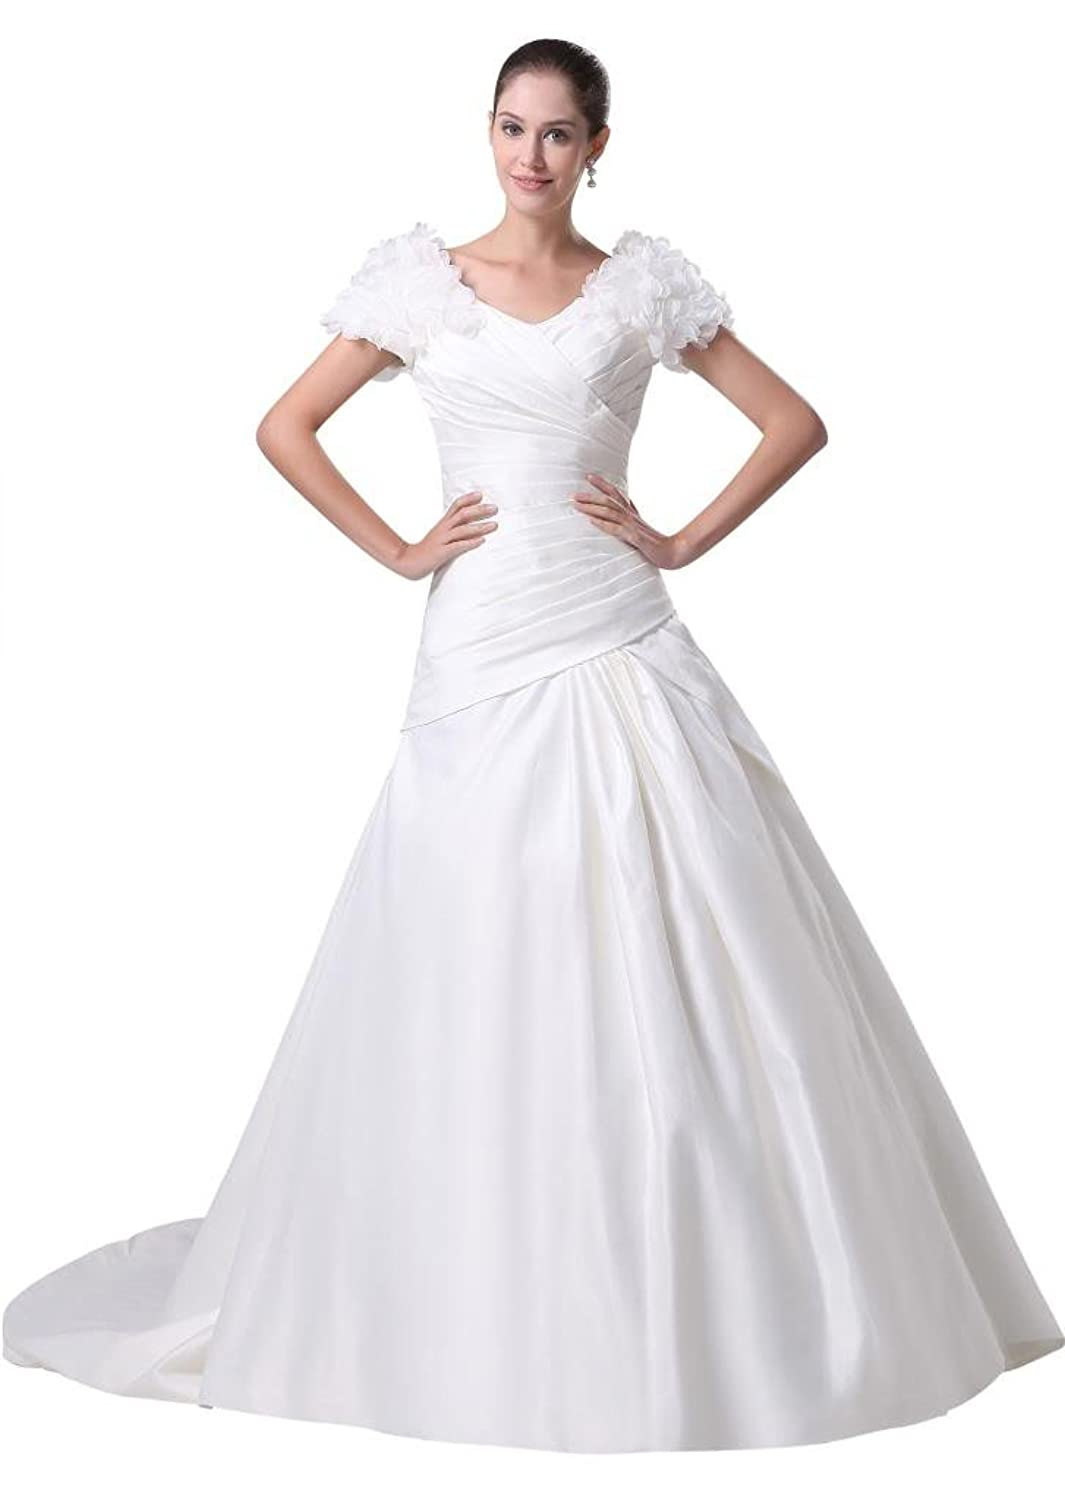 GEORGE BRIDE Formal Short Sleeves Satin Outdoor Wedding Dress